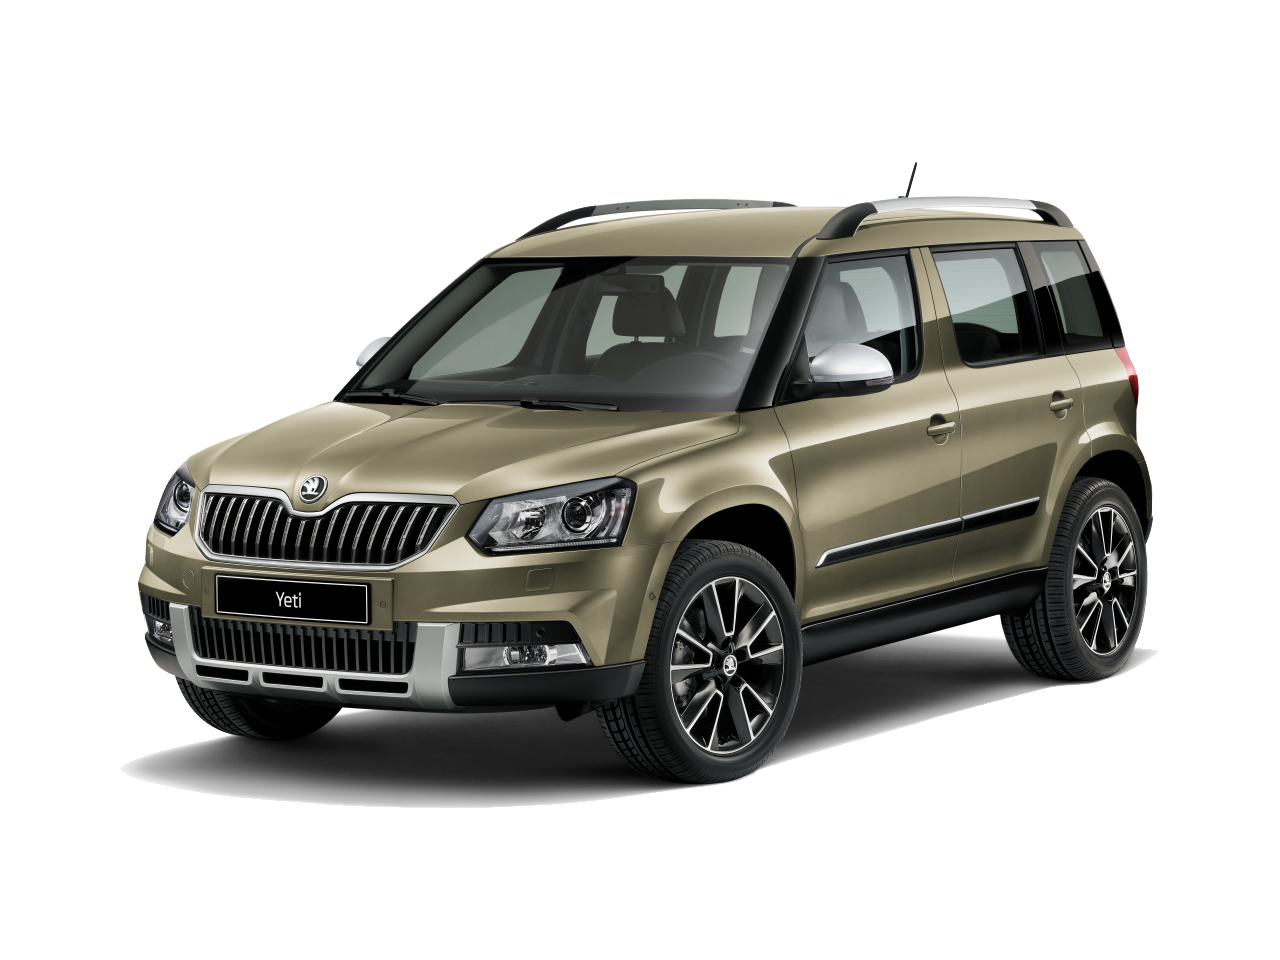 2018 skoda yeti prices in uae gulf specs reviews for dubai abu dhabi and sharjah yallamotor. Black Bedroom Furniture Sets. Home Design Ideas